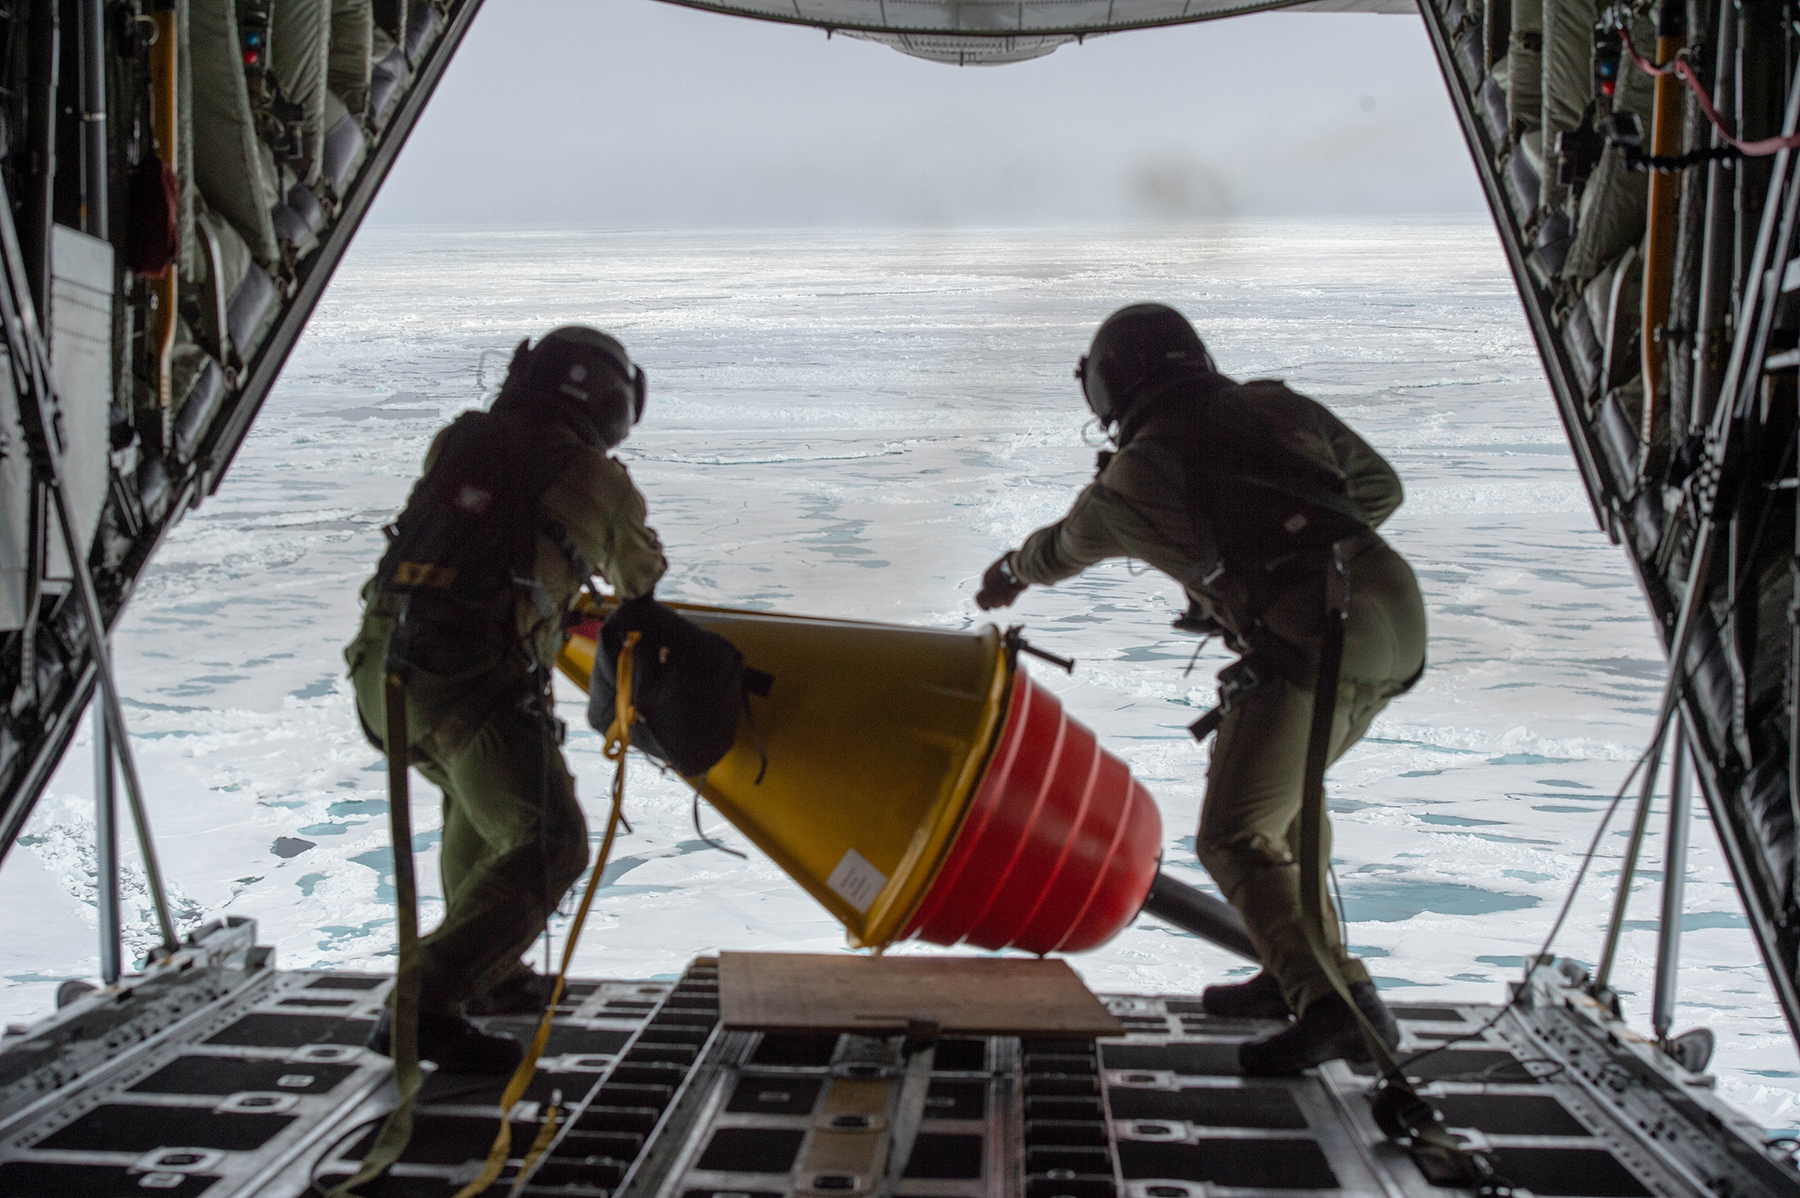 Two people wearing olive green flight suits and helmets push a yellow and orange buoy off the ramp of a cargo aircraft flying over ice and snow.